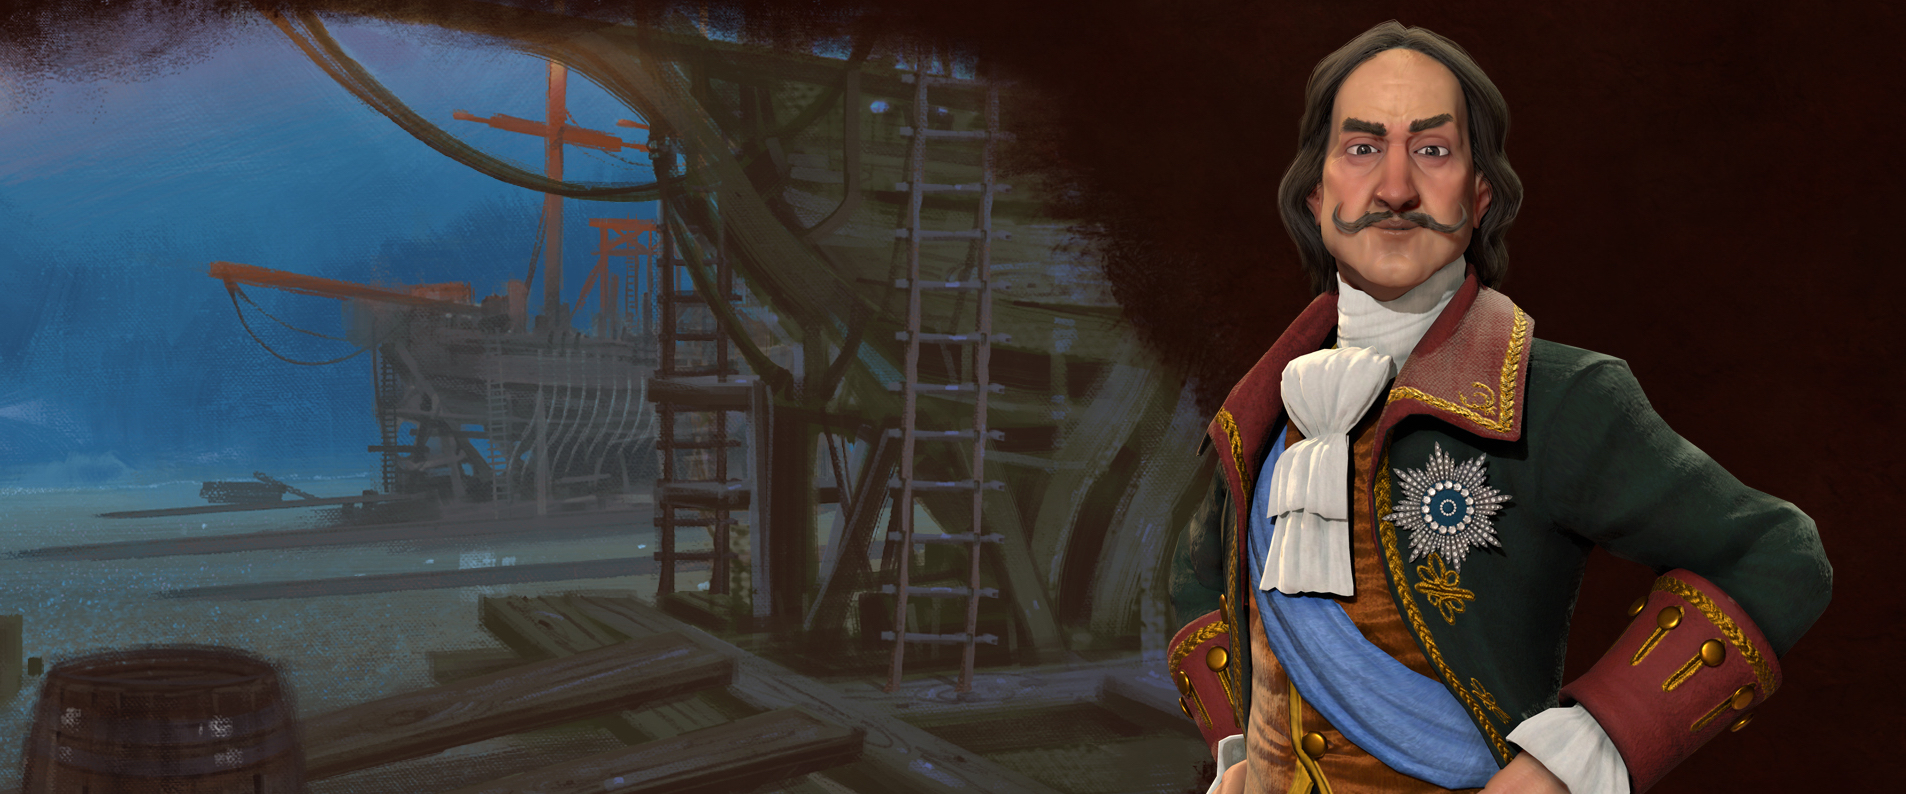 Peter the Great Leads Russia in Civilization 6